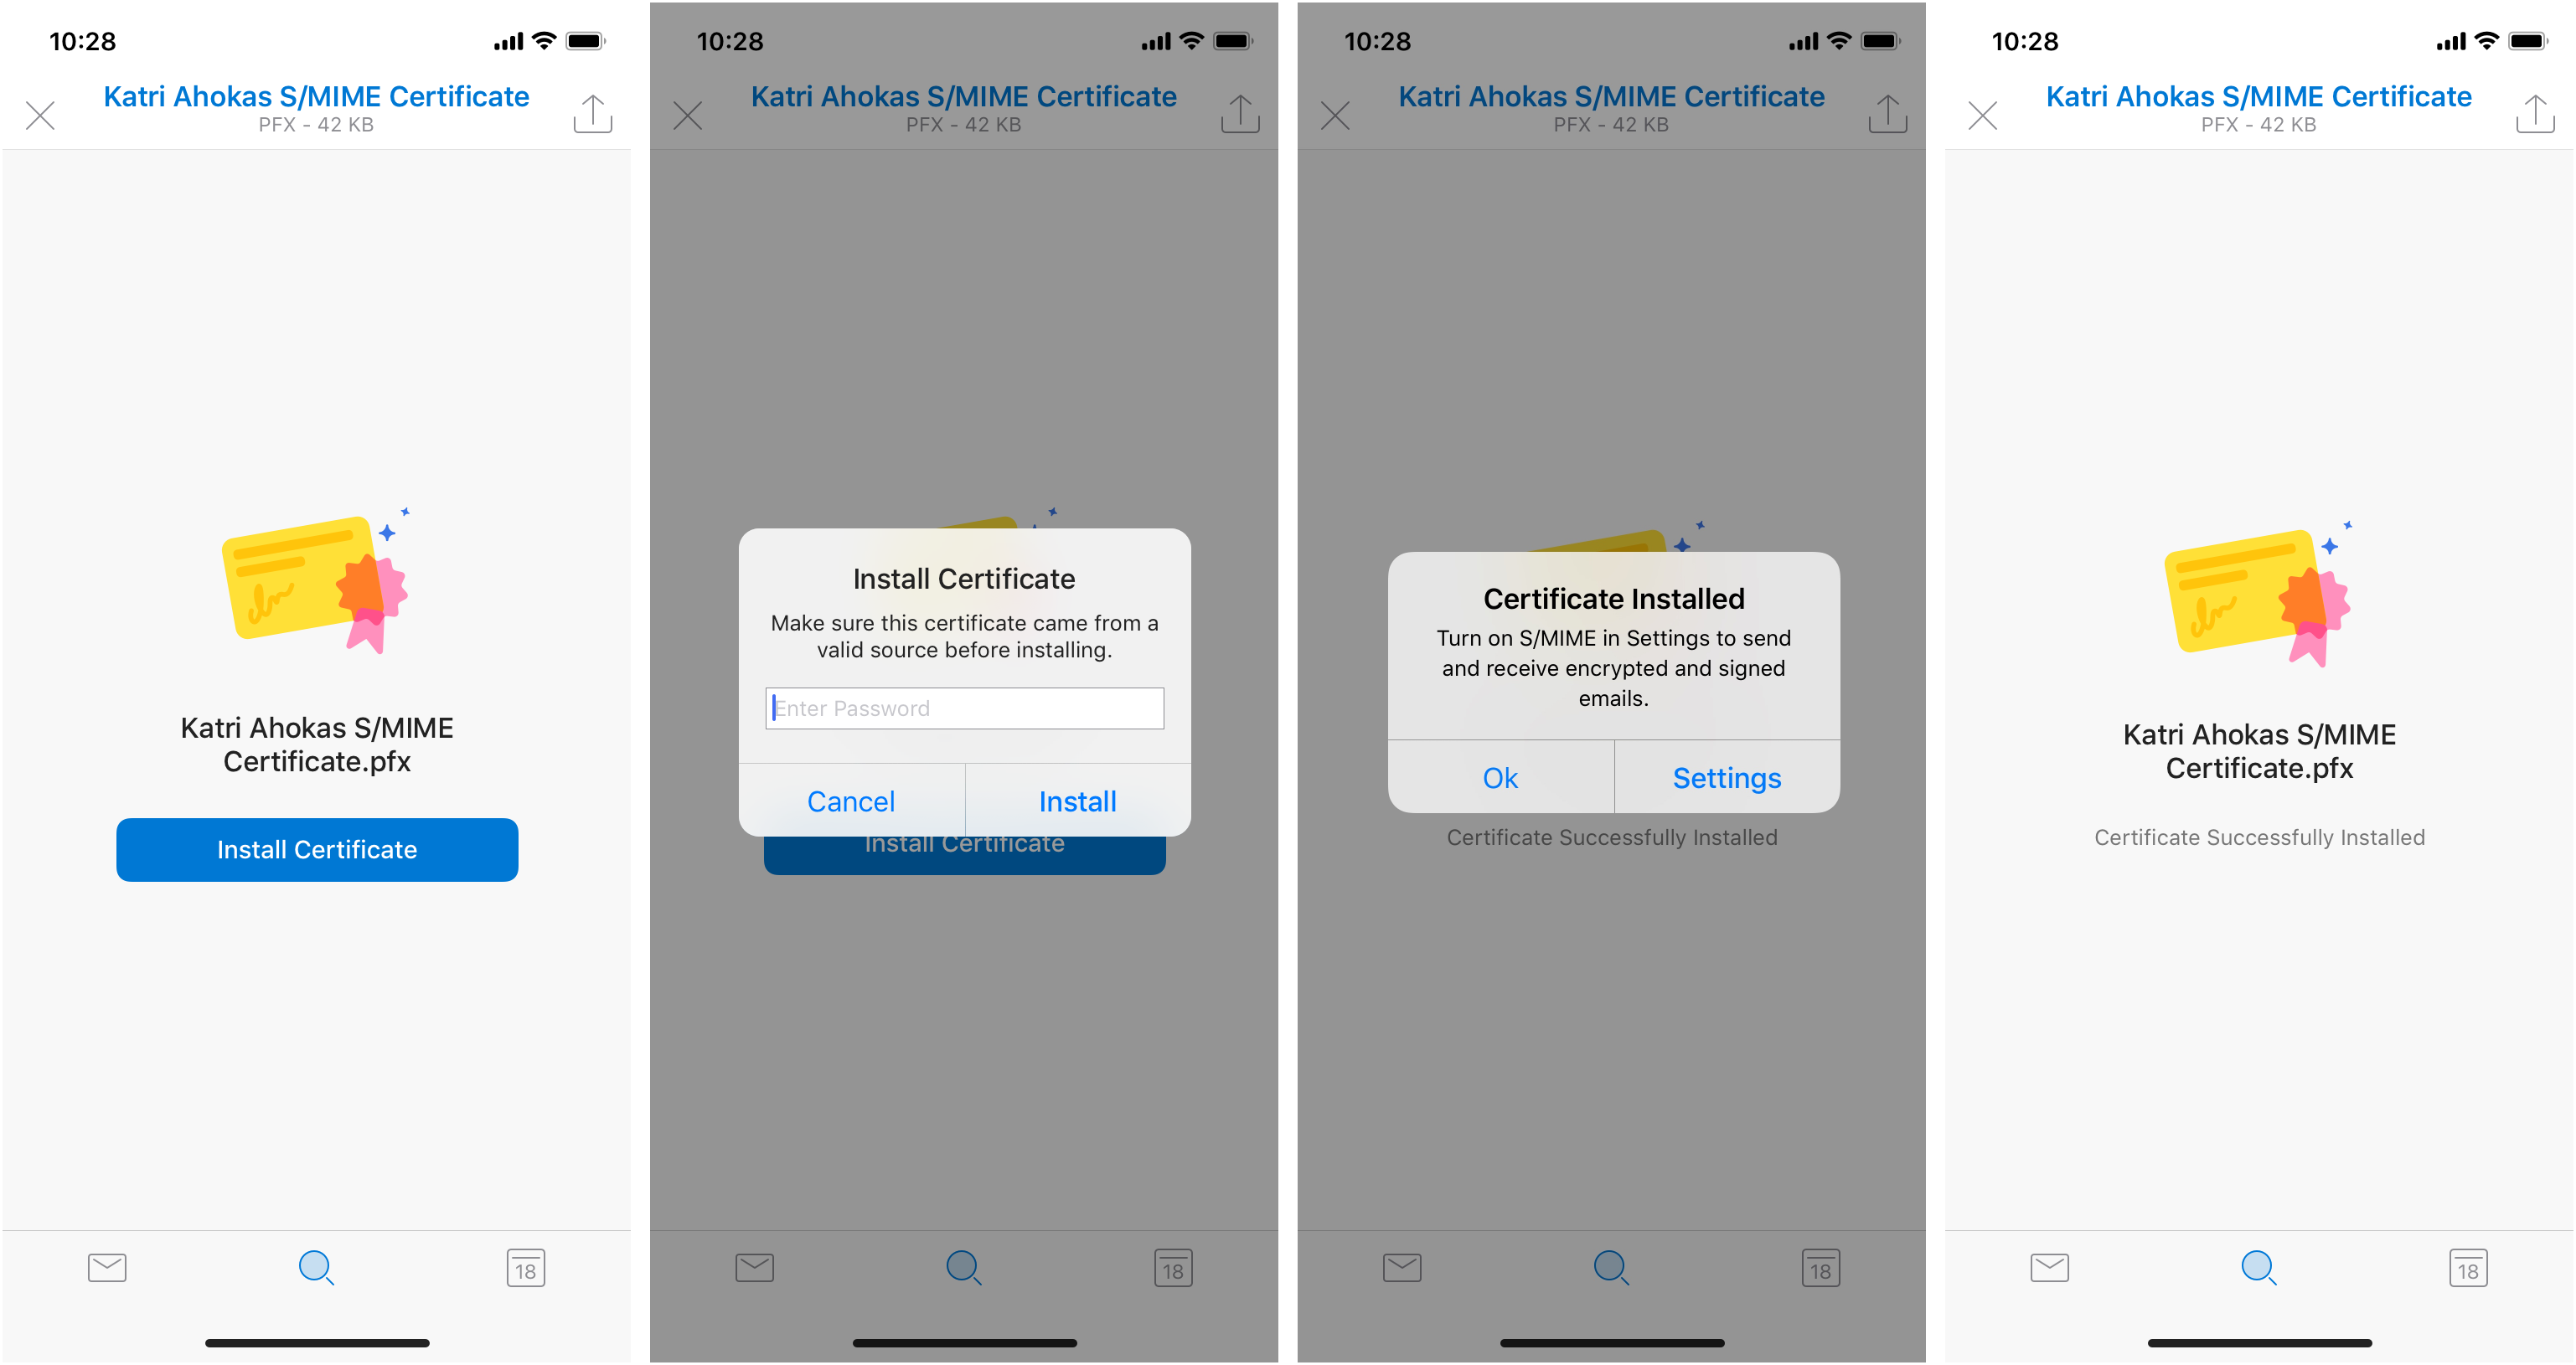 S/MIME functionality available in Outlook for iOS TestFlight